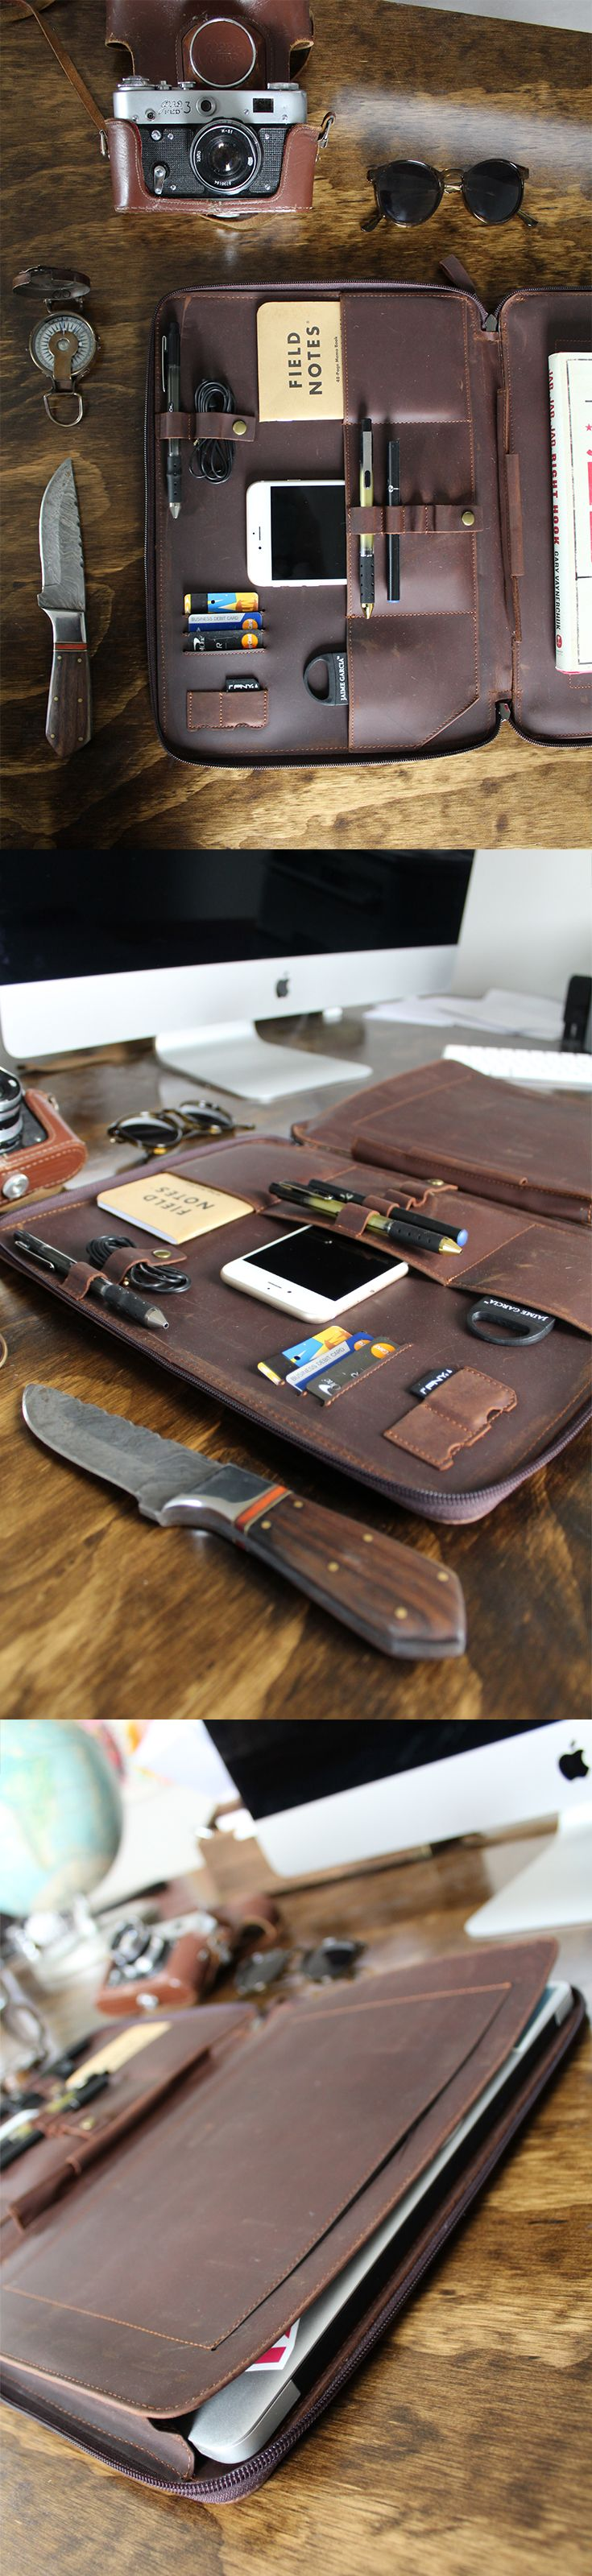 Vote for your favourite technology gadgets and contribute your own suggestions to the lists to help out future buyers. https://best.trifty.co/category/tech/ _____________________________ EDC -Perfect Everyday Carry Apple Air MacBook Organizer Portfolio Case.